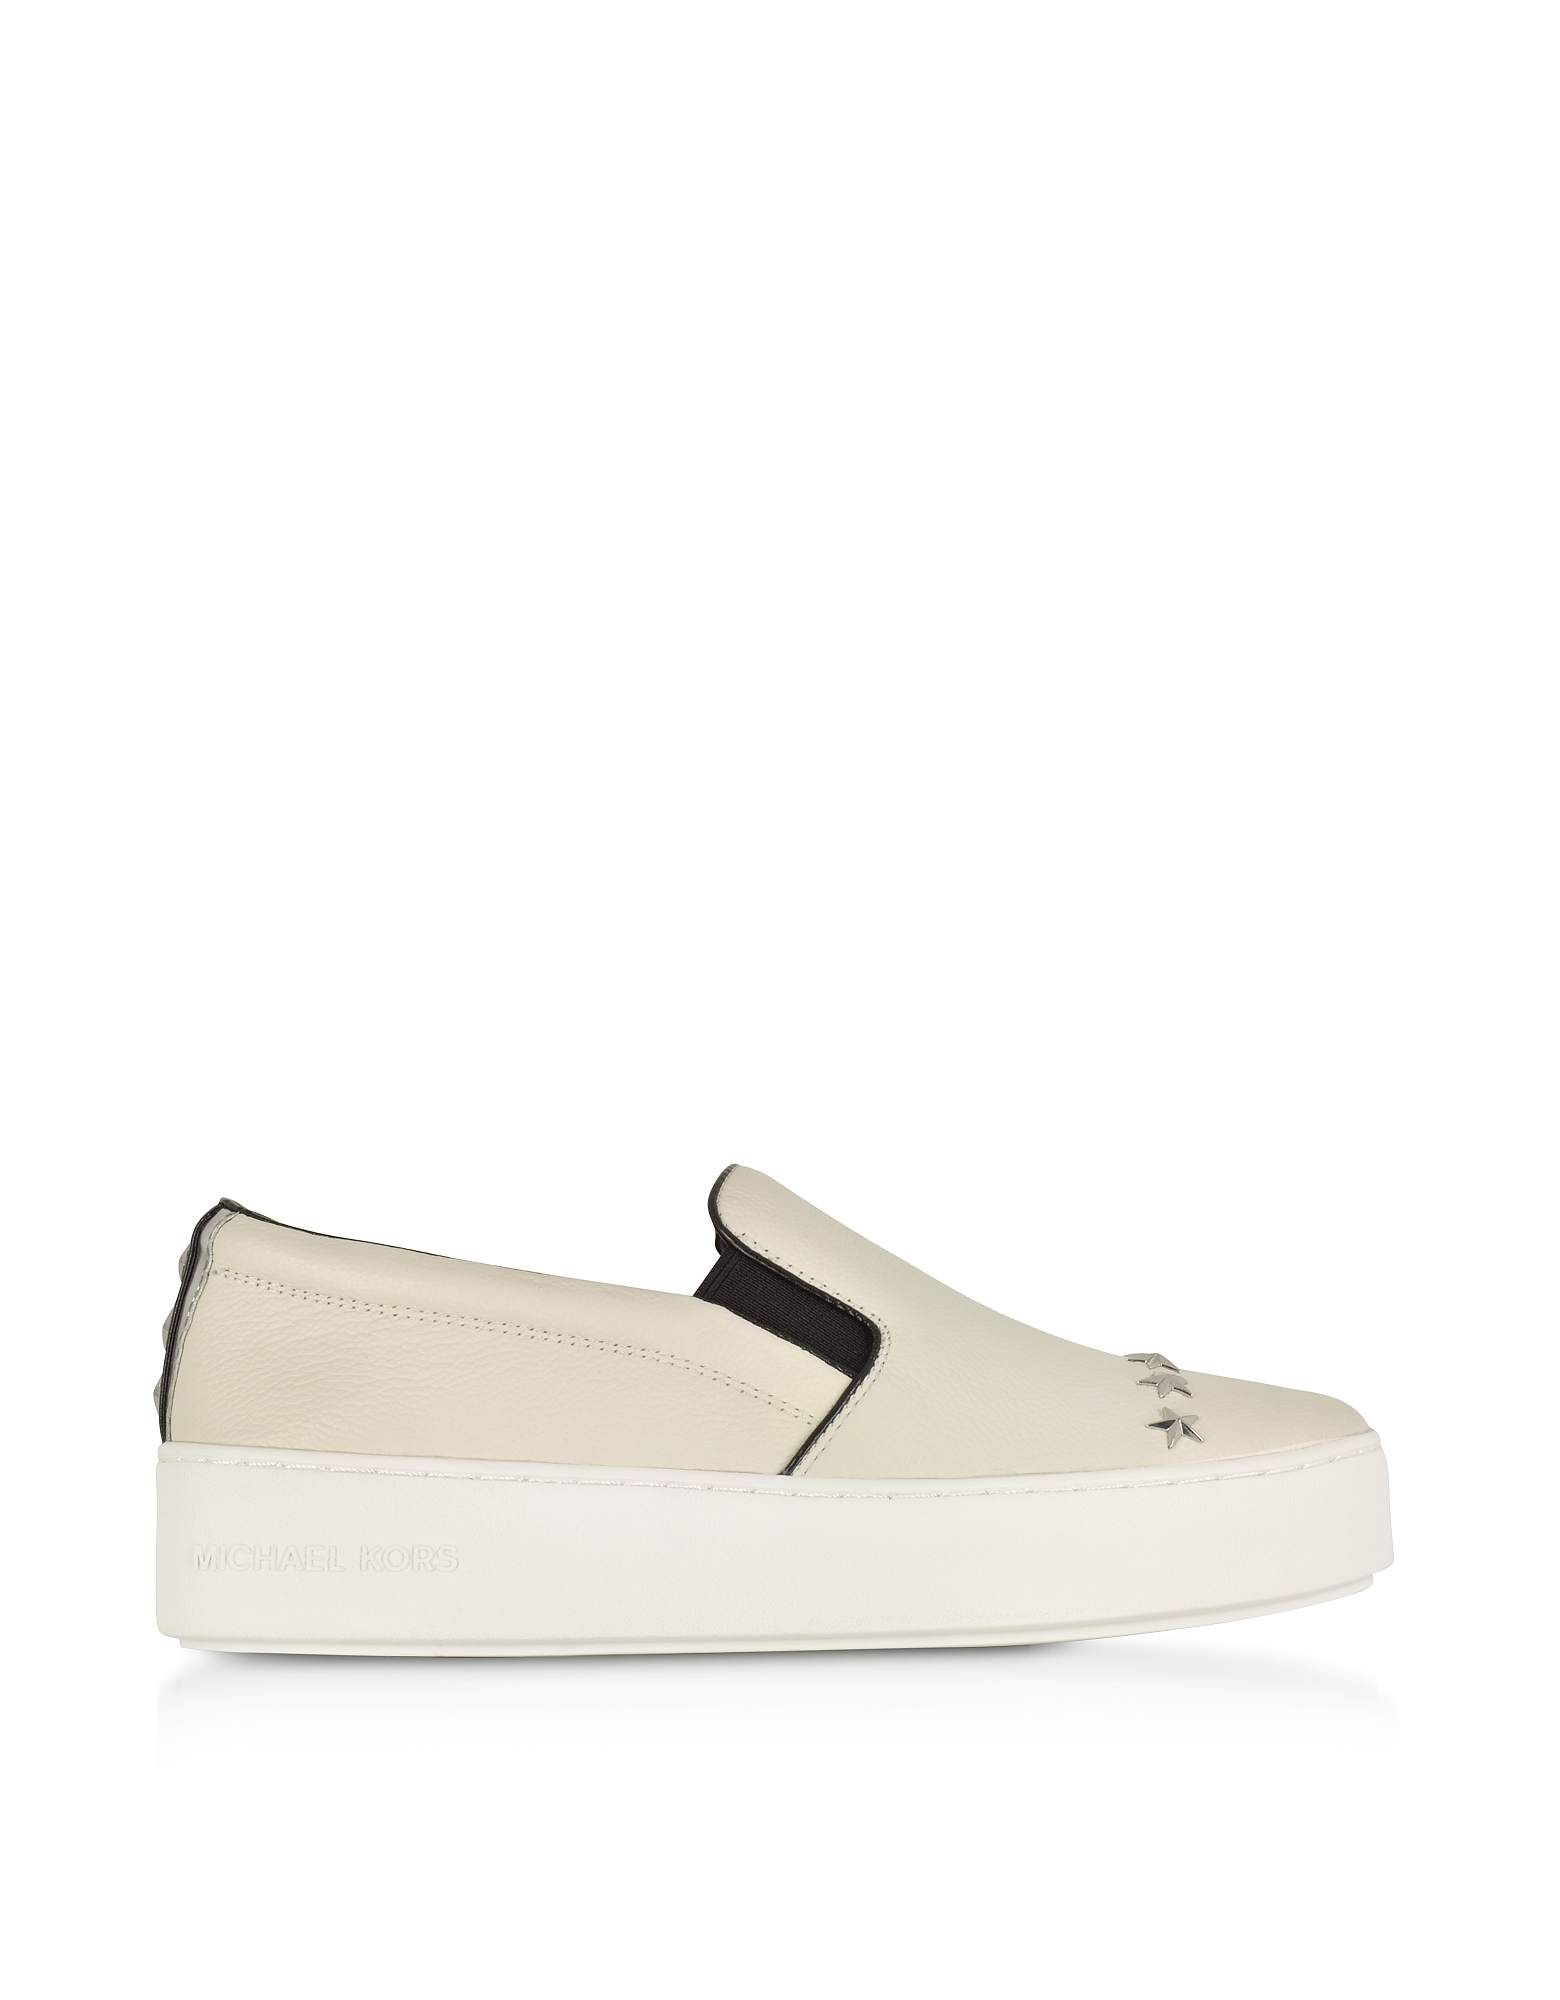 Michael Kors Shoes, Trent Optic White Leather Embellished Slip On Sneakers w/Silvertone Stars